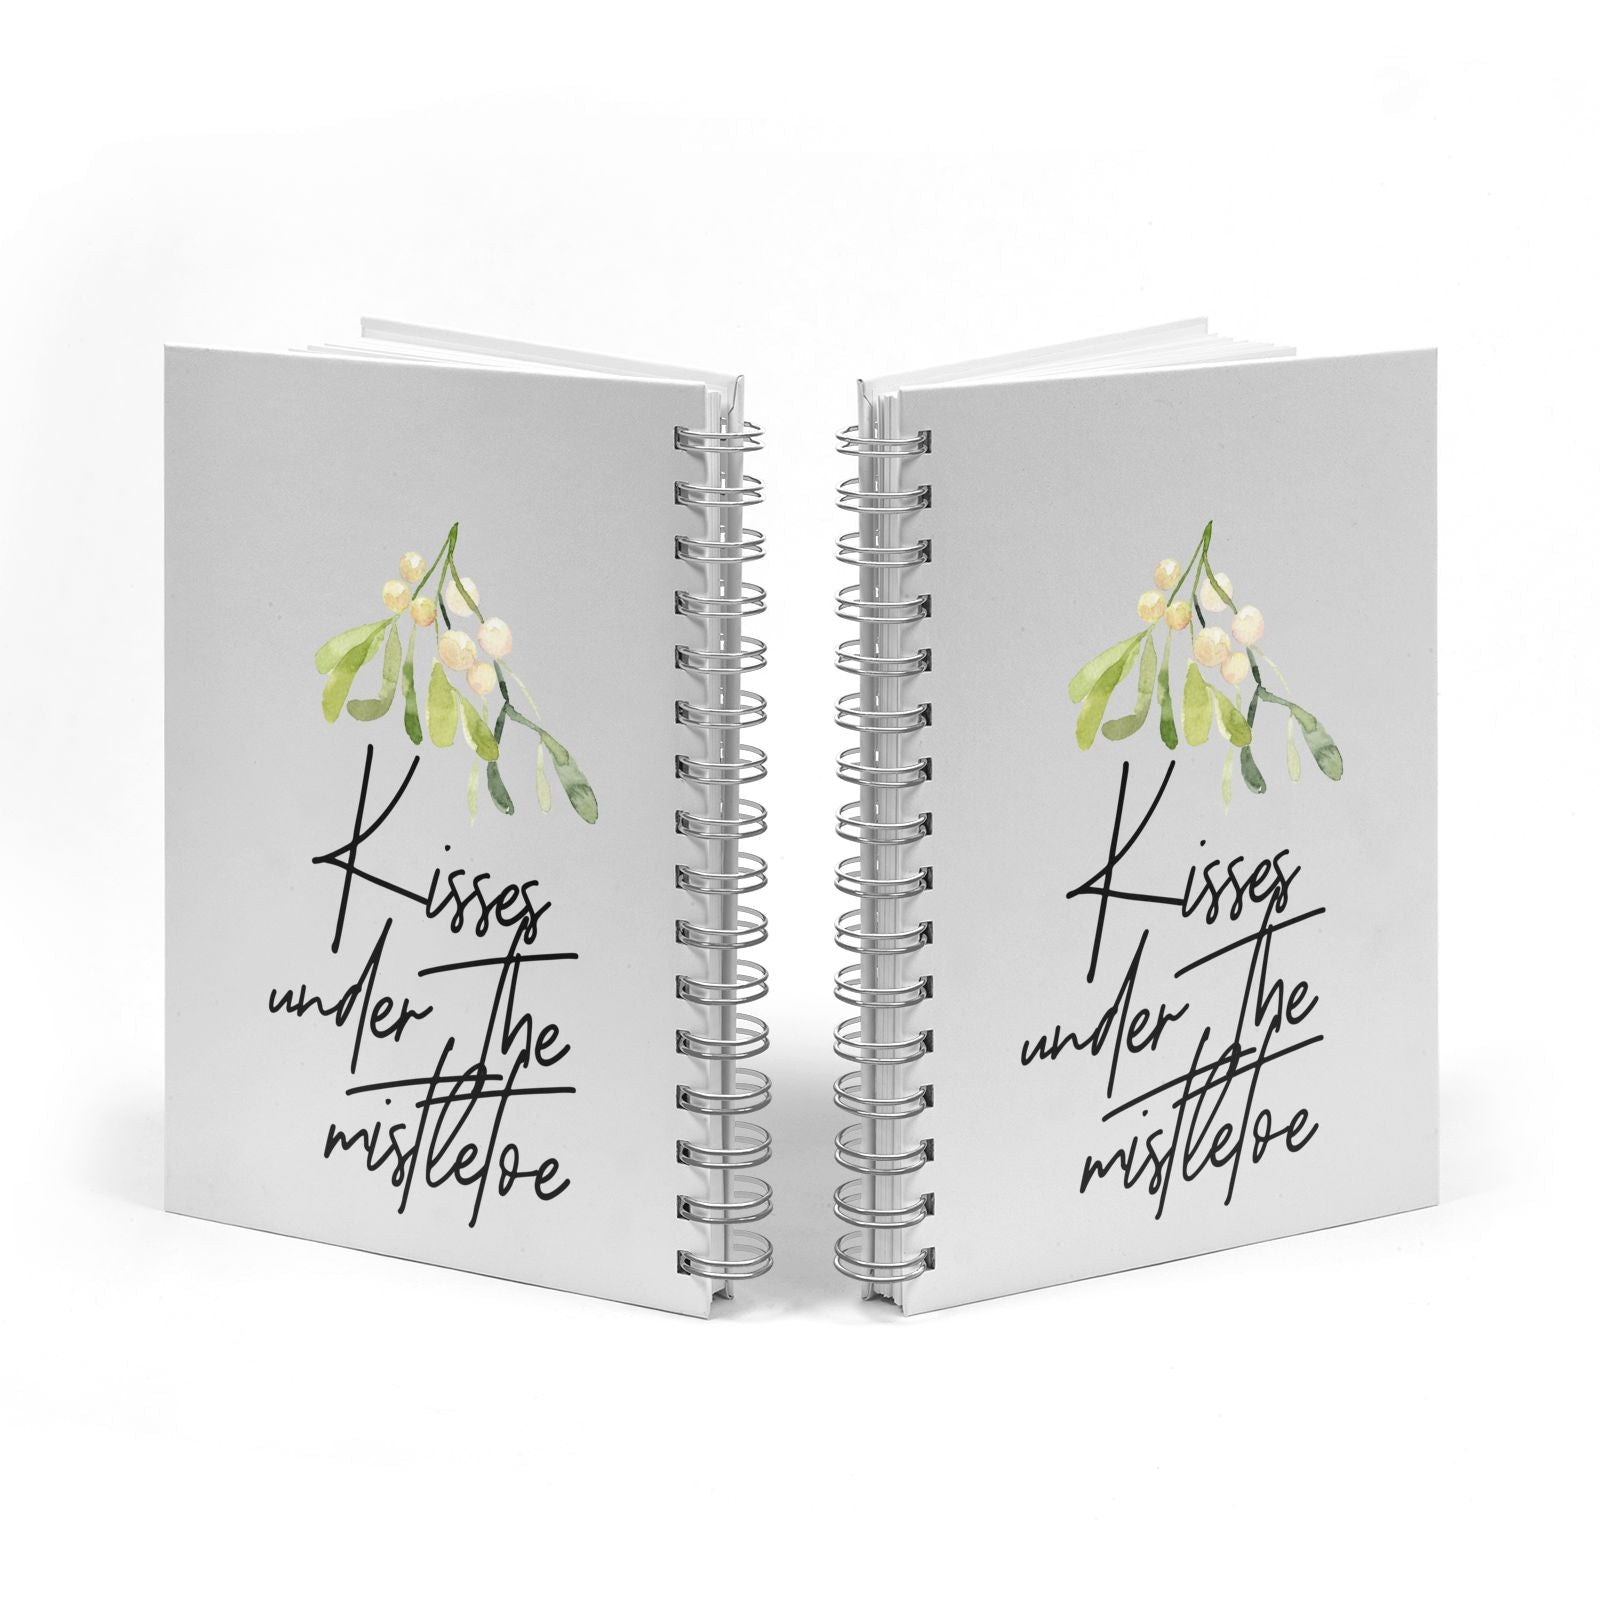 Kisses Under The Mistletoe Notebook with Silver Coil Spine View